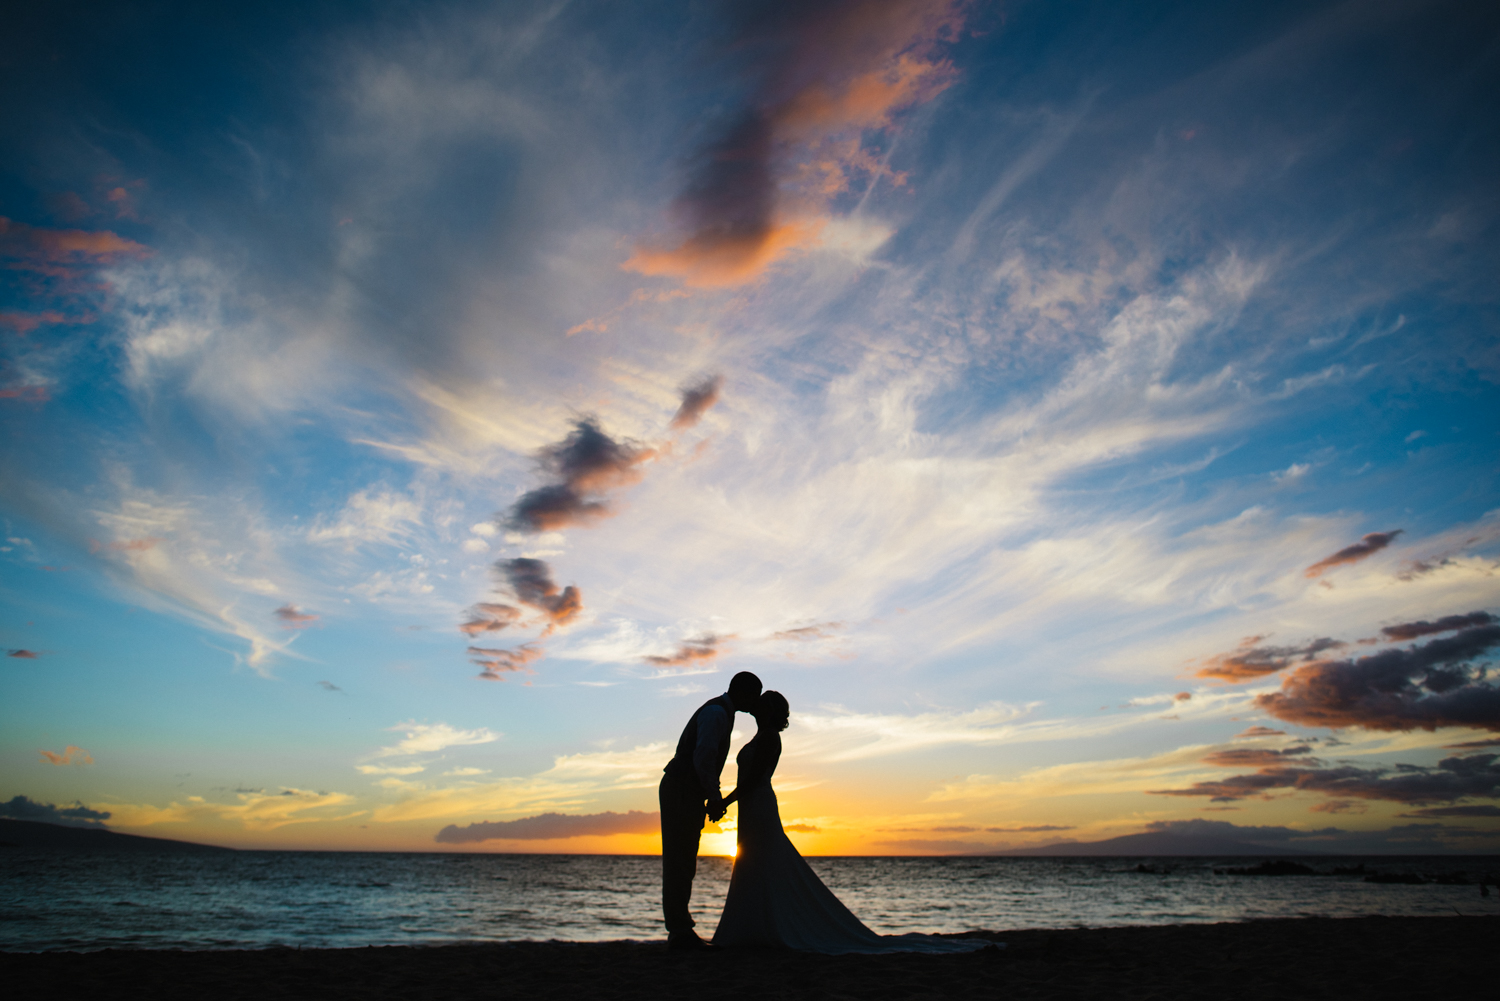 Maui Wedding Photographer, Naomi Levit, captures Wailea sunset